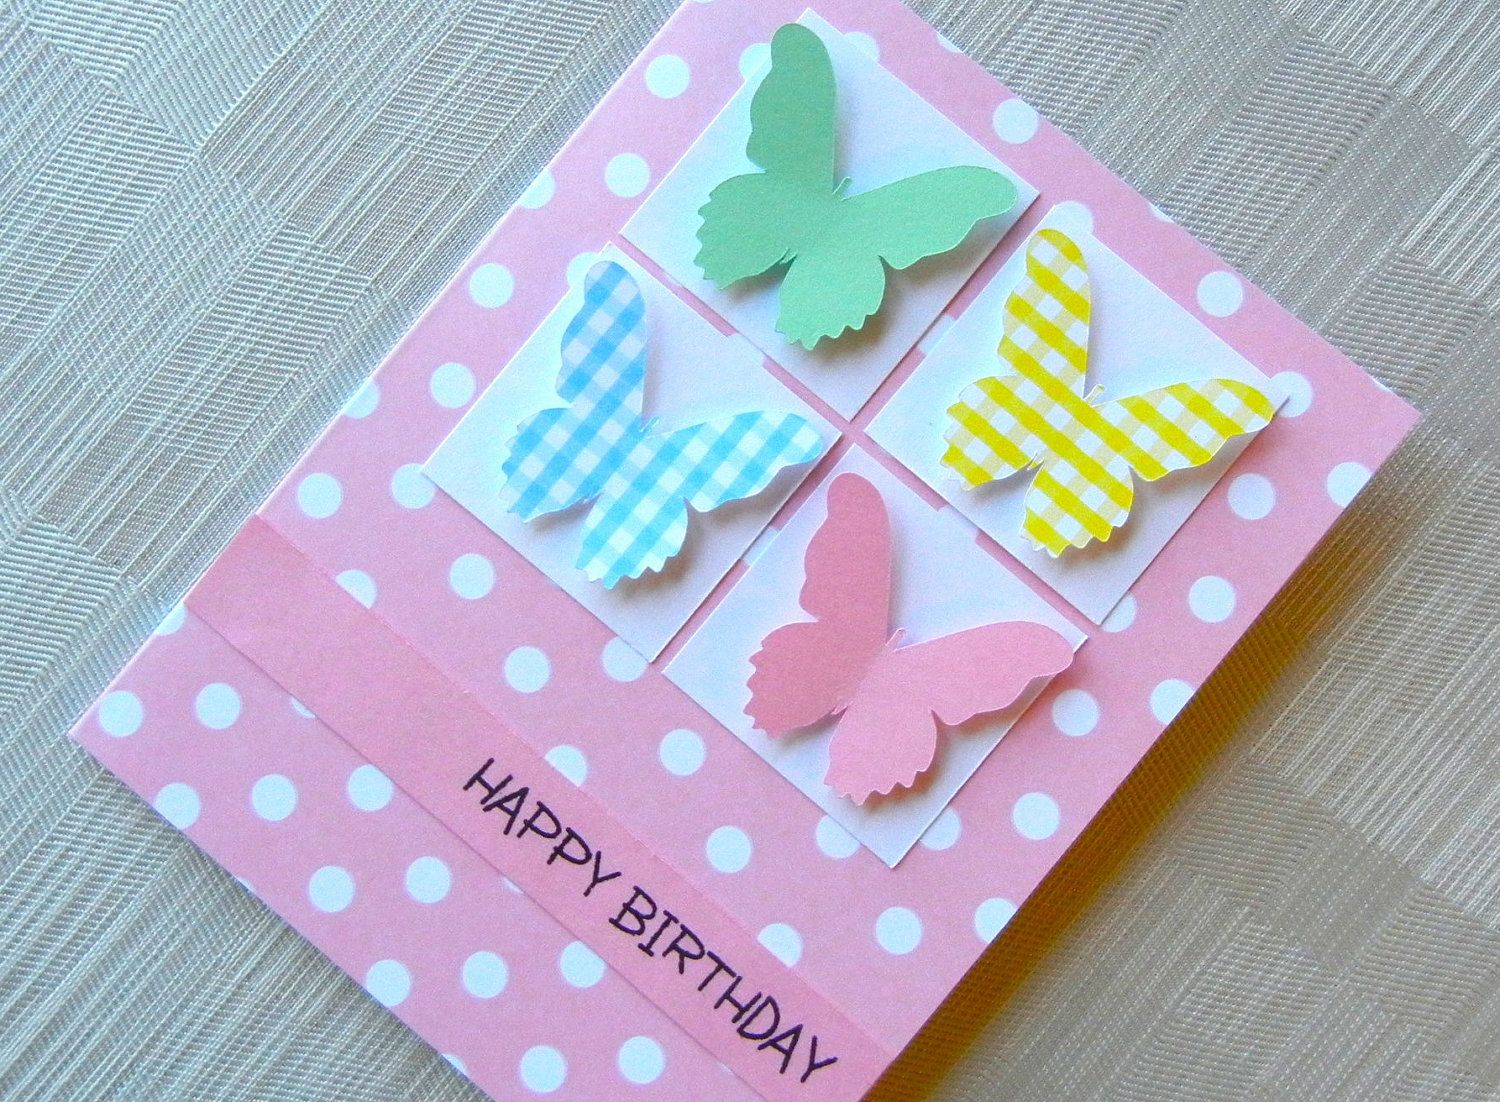 Pink hand made cards pinterest birthday card happy birthday kids birthday card happy birthday kids birthday card handmade birthday card for girl butterfly polka dots pink send happy birthday kristyandbryce Images